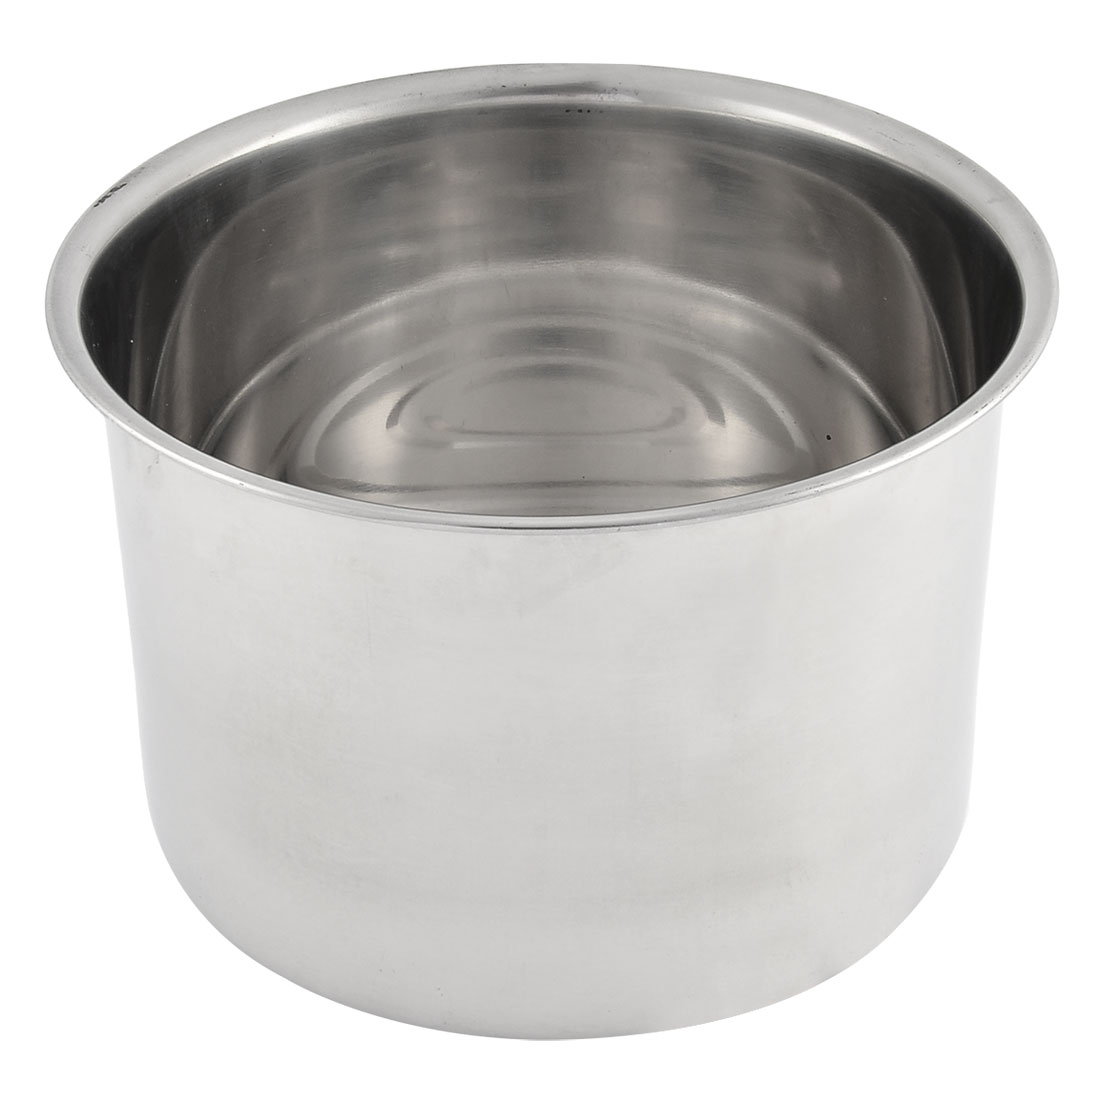 Kitchen Stainless Steel Food Soup Salad Fruit Egg Ferment Bowl 20cm Diameter